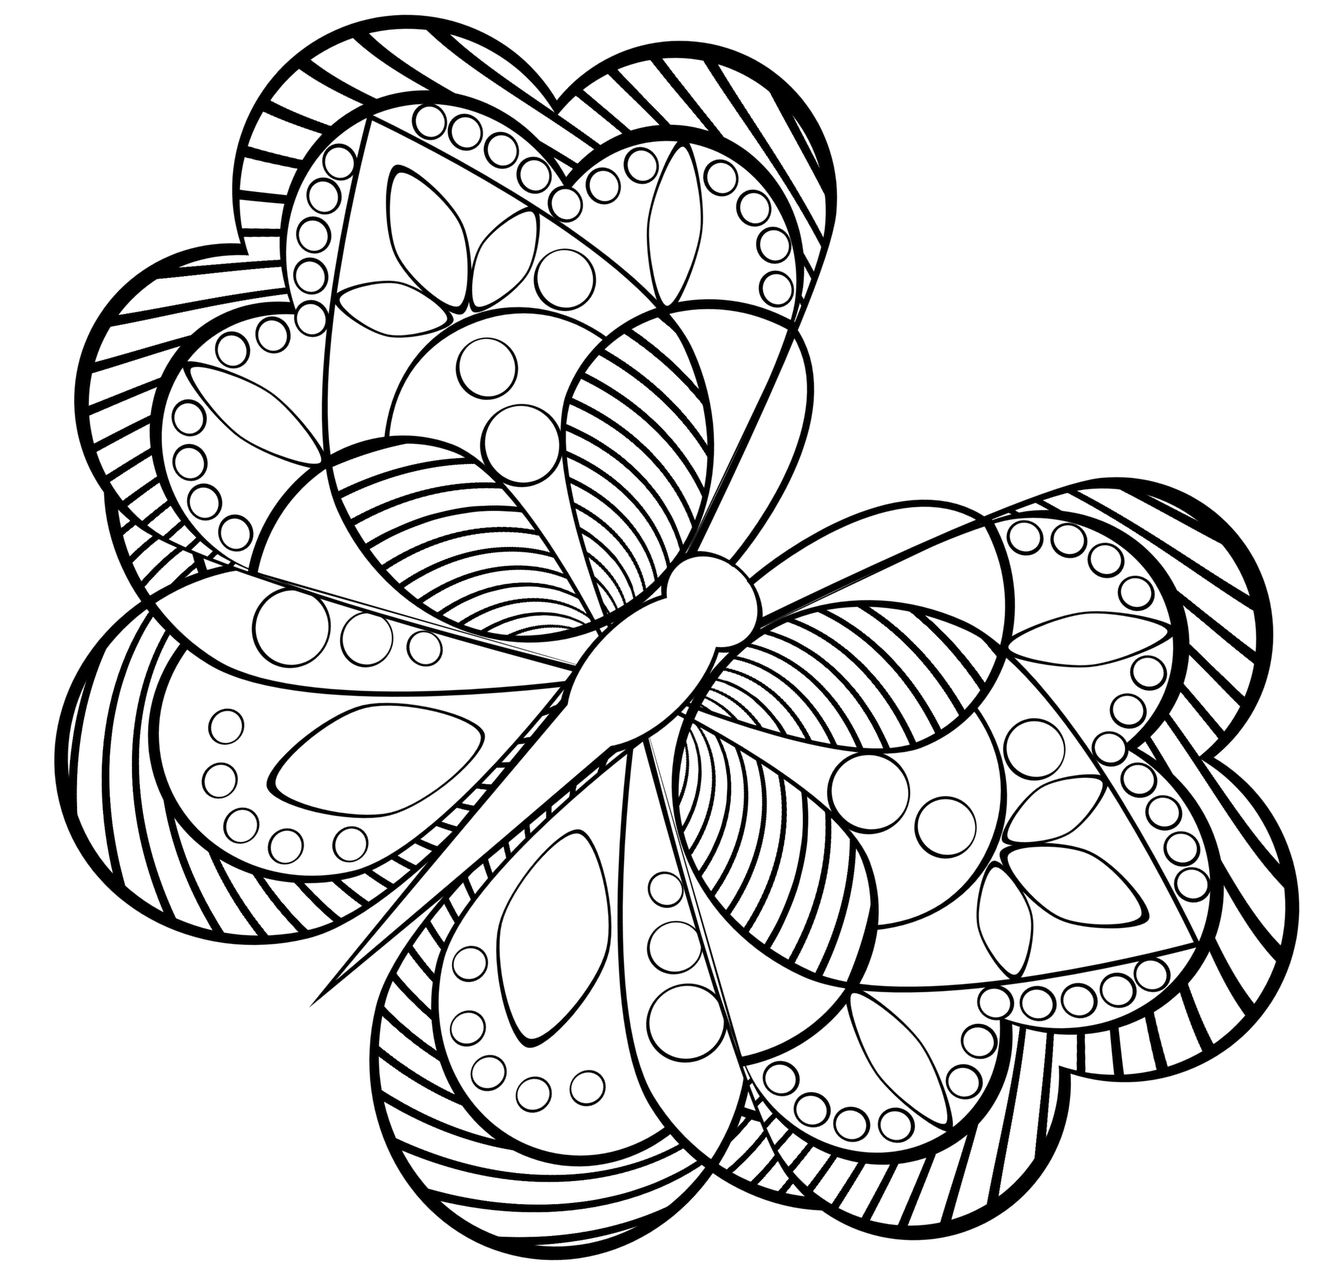 coloring book for adults floral coloring pages for adults best coloring pages for coloring book adults for